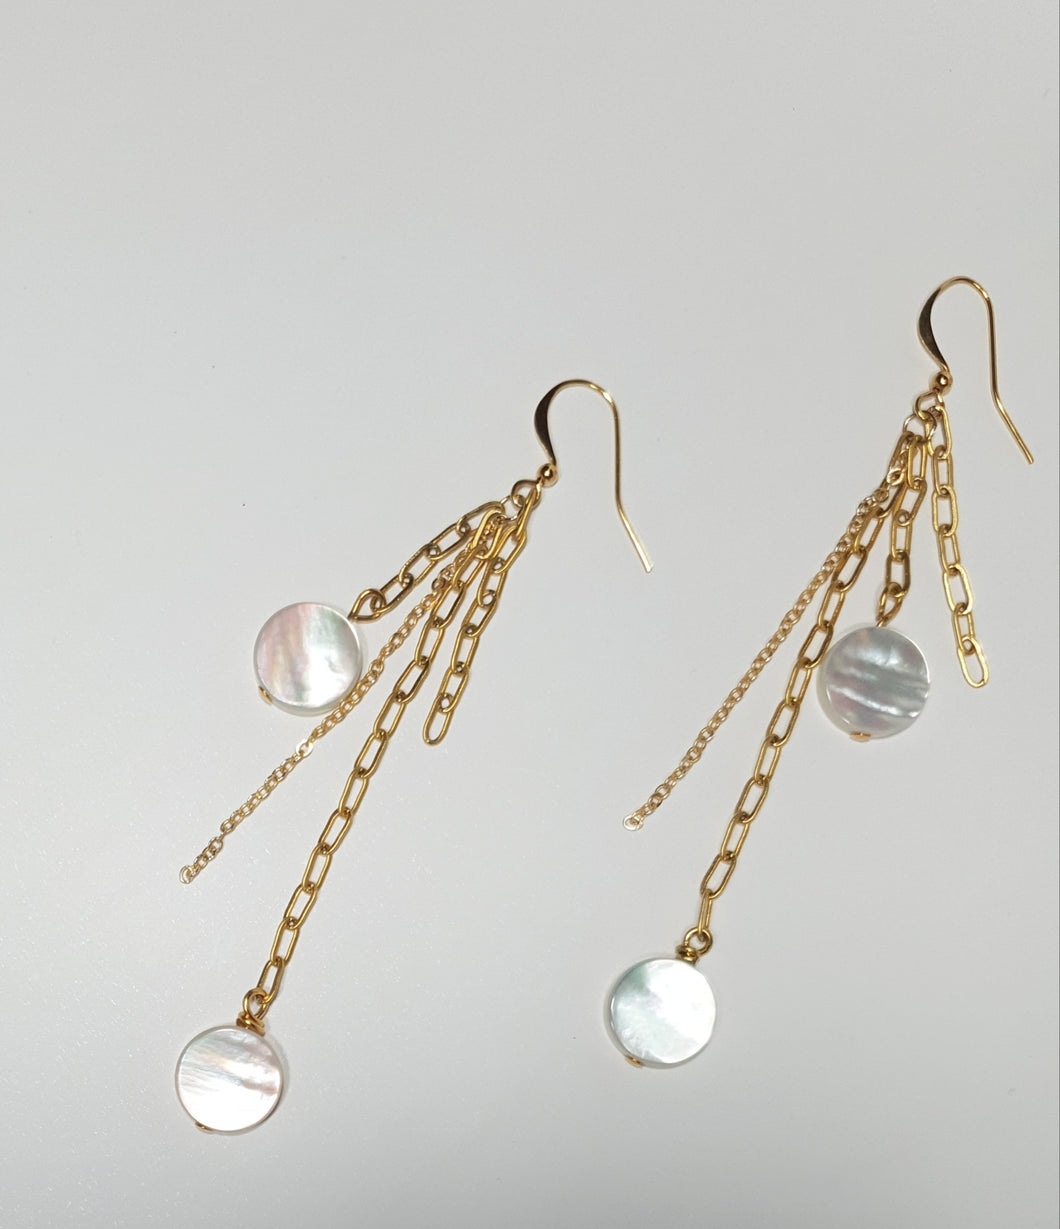 The 'GALAXY' Drop Mother of Pearl Earrings